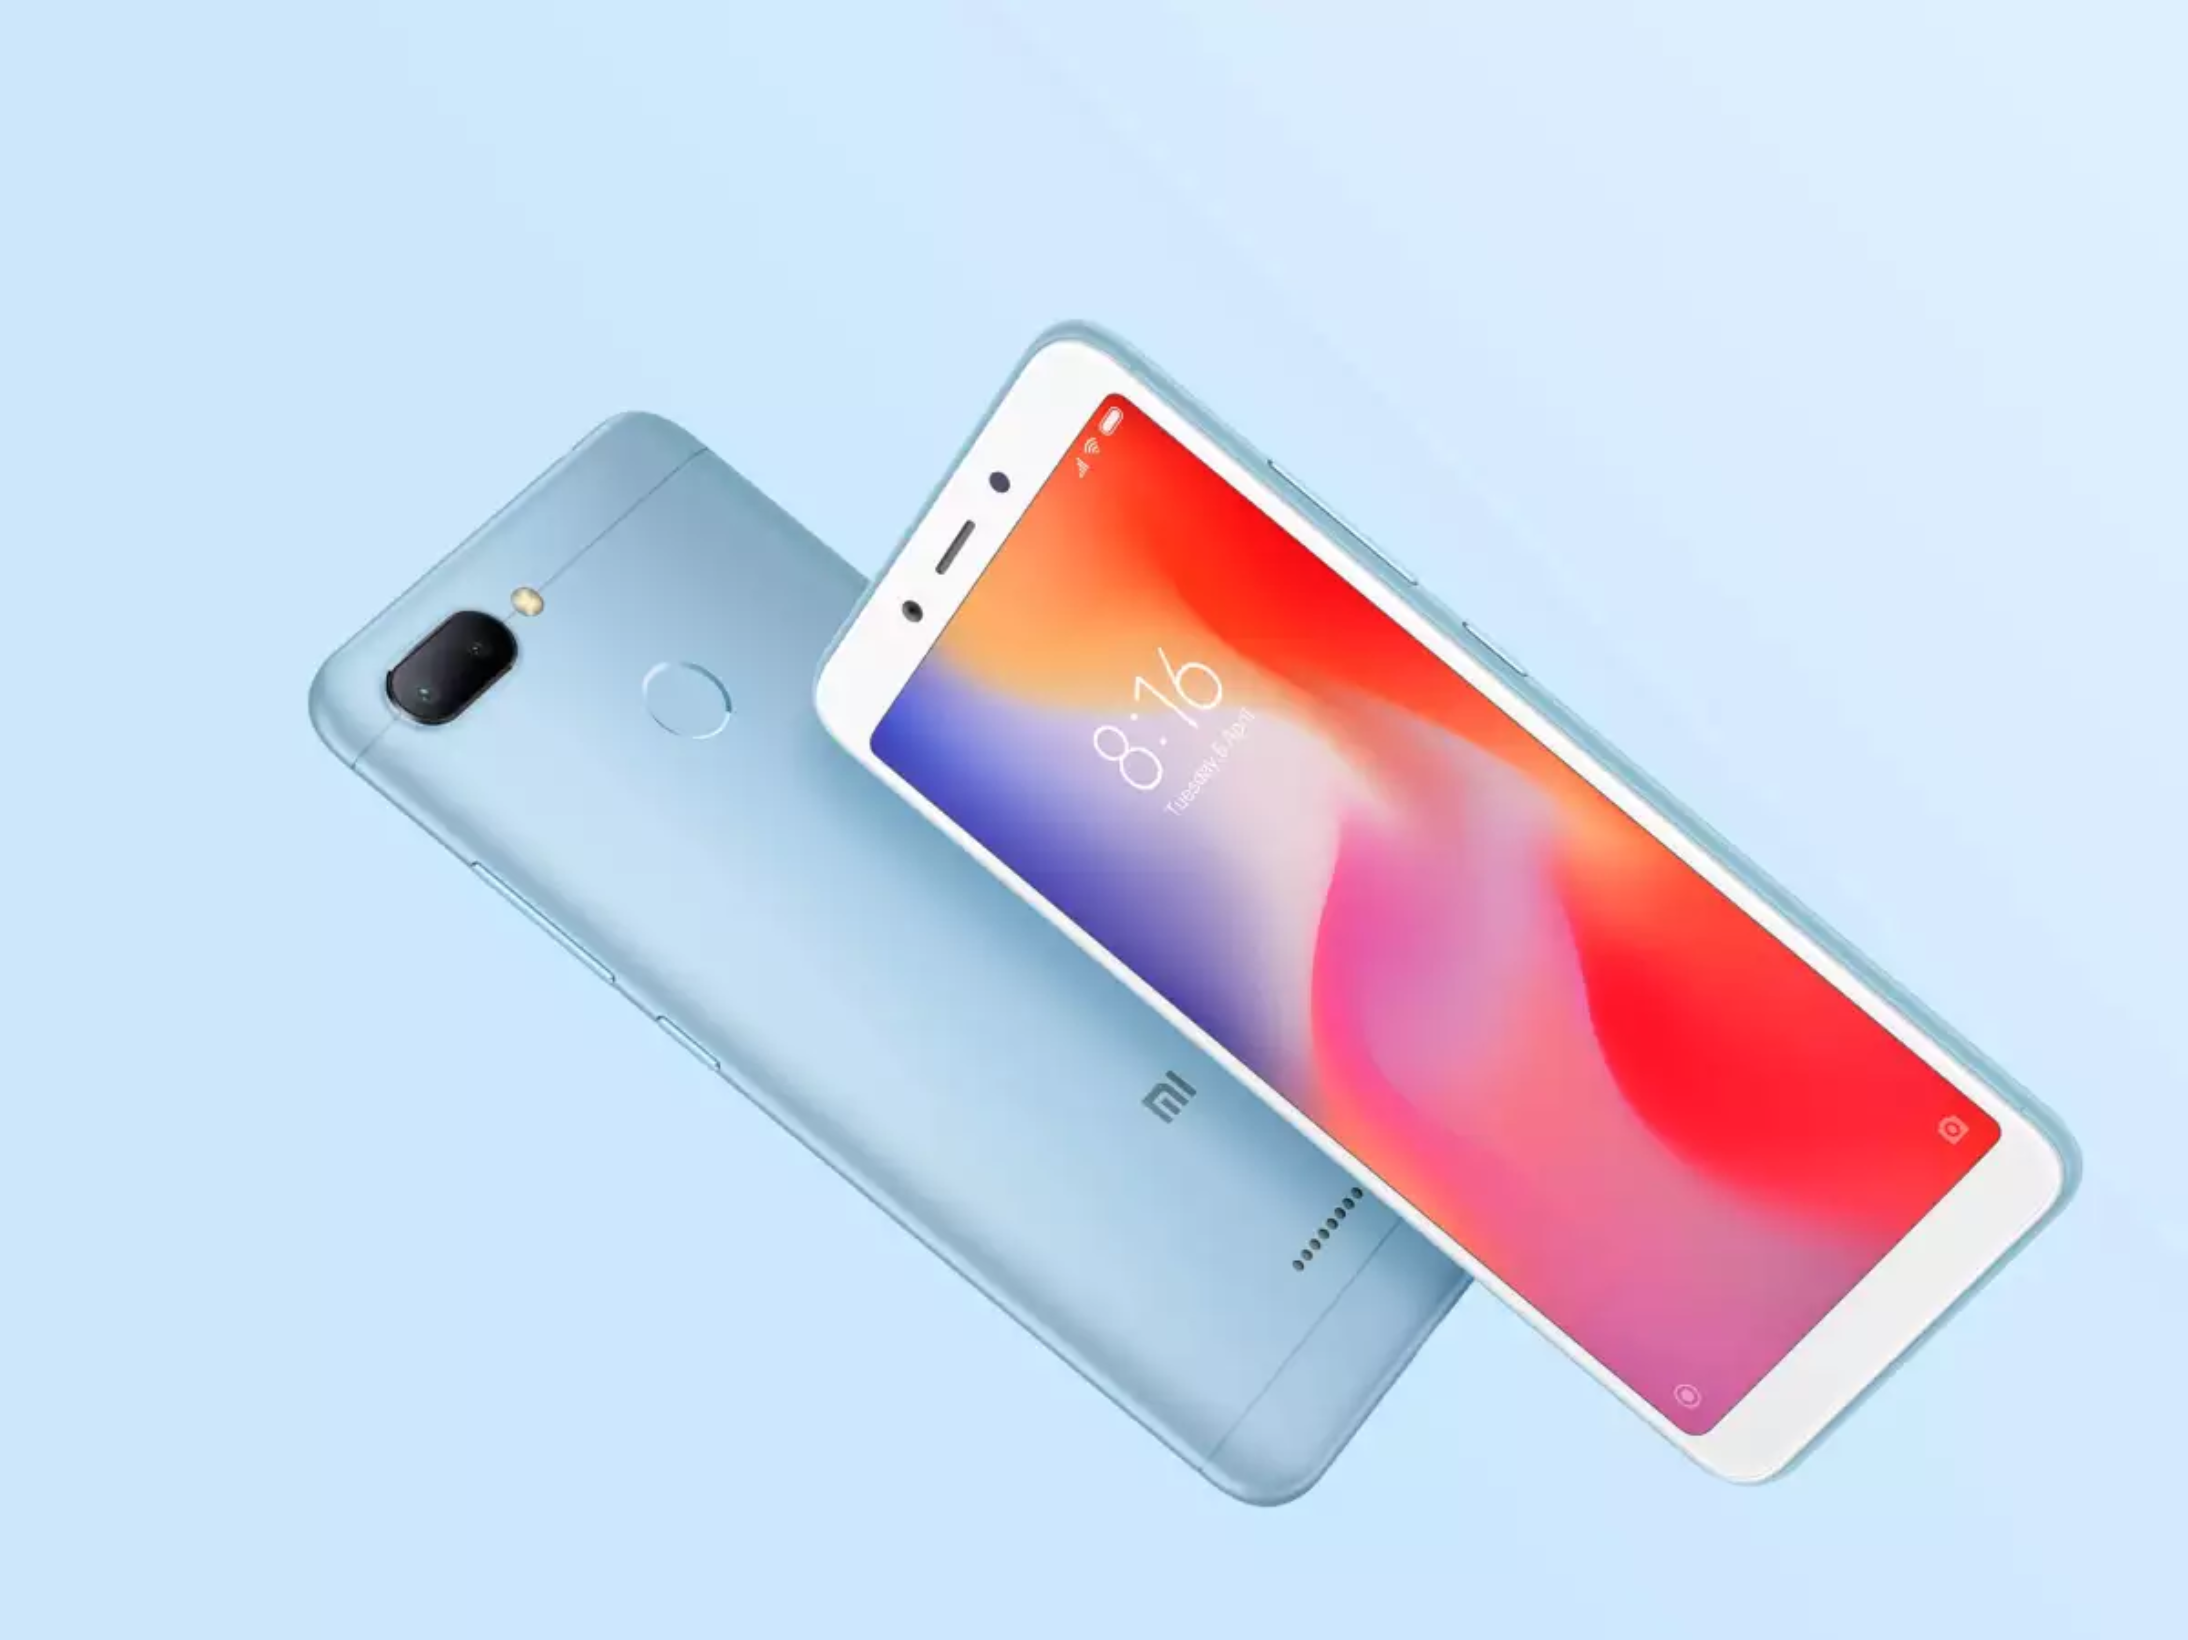 Xiaomi Redmi Note 7 Pro to launch on February 28 in India